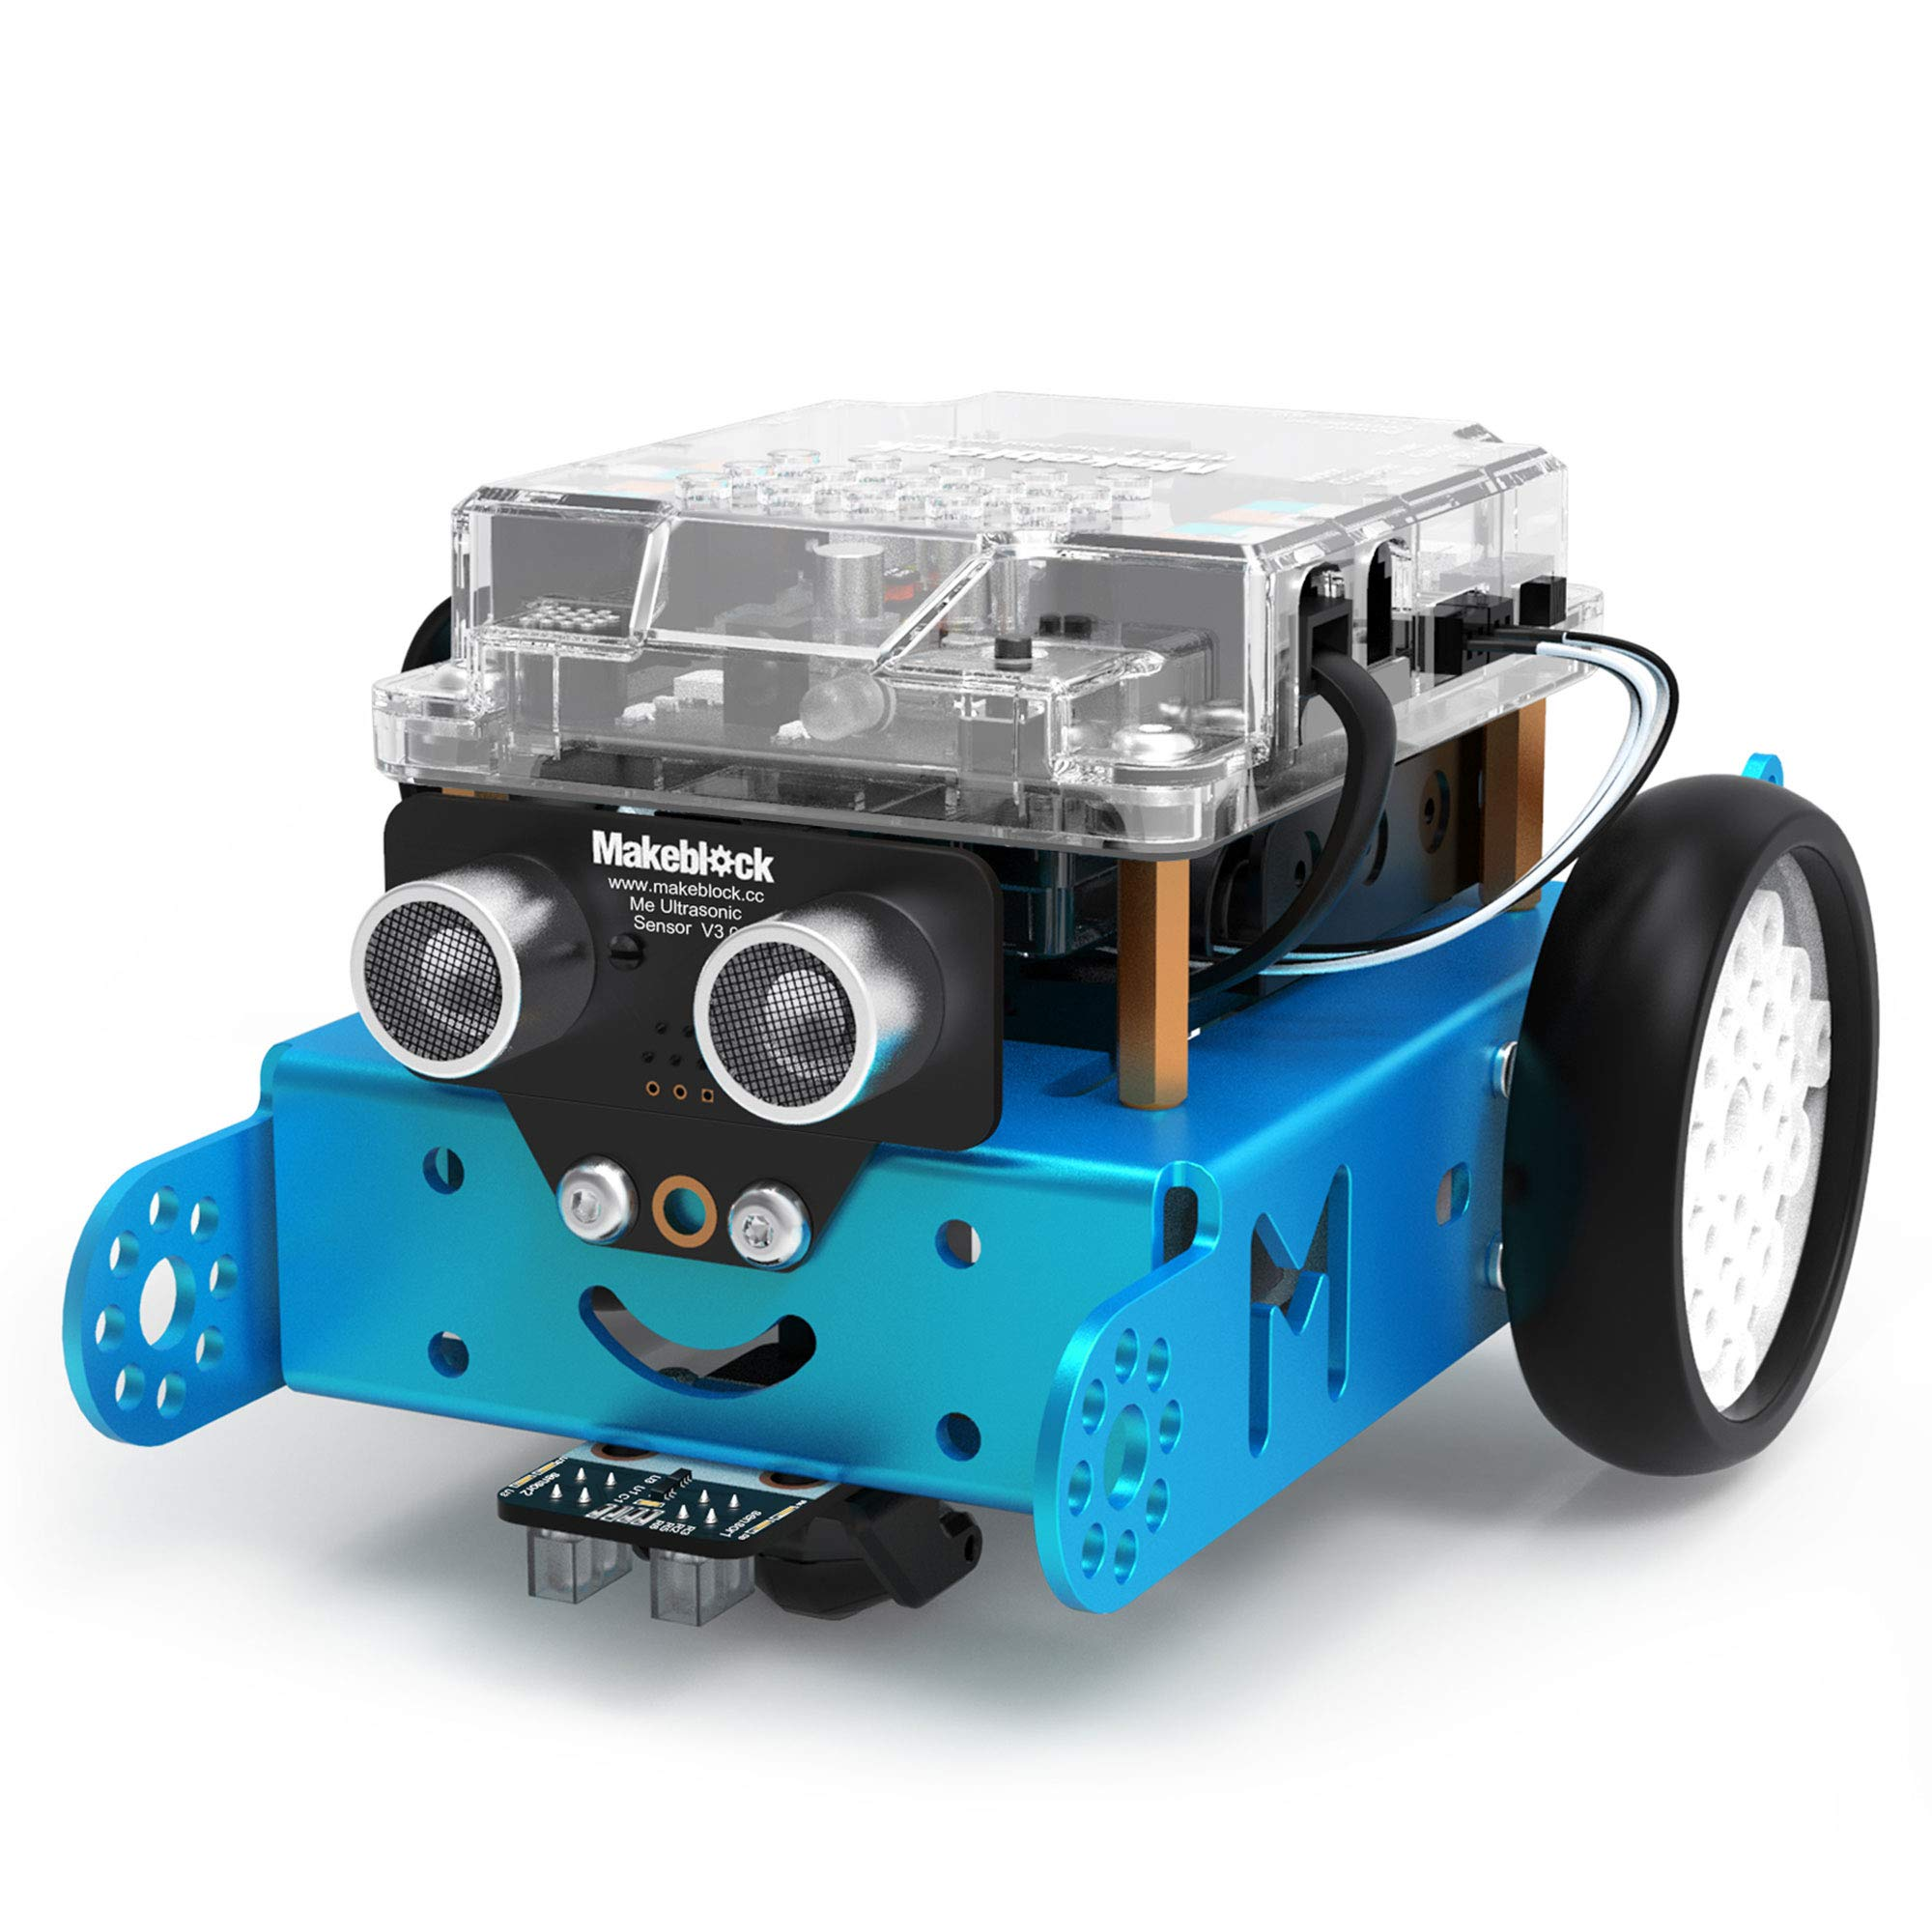 Makeblock mBot Robot Kit, DIY Mechanical Building Blocks, Entry-level Programming Helps Improve Children' s Logical Thinking and Creativity Skills, STEM Education. (Blue, Bluetooth Version, Family) by Makeblock